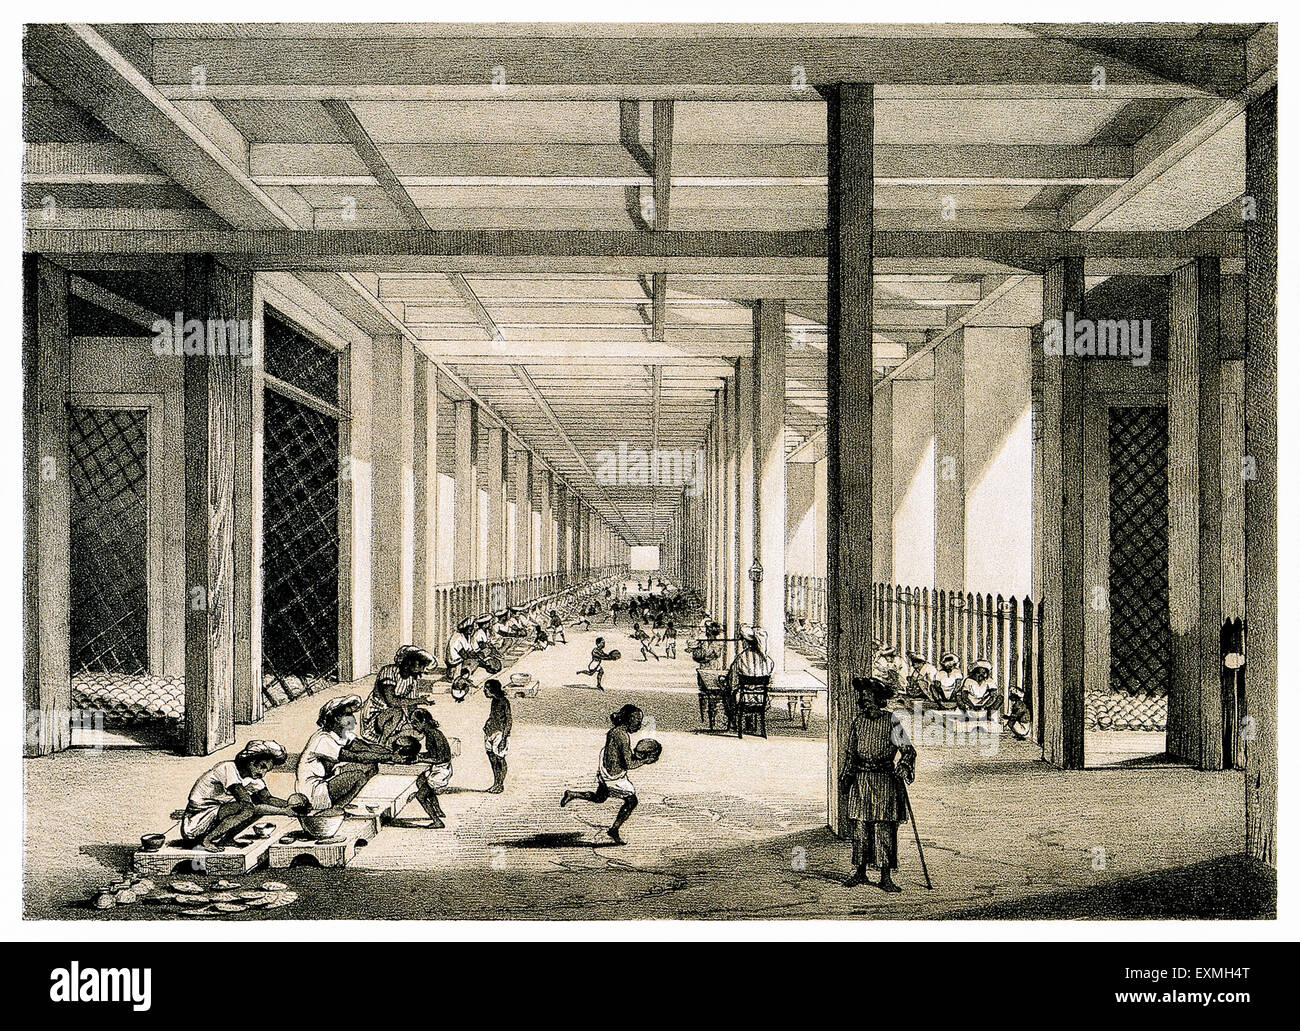 'The Balling Room' where crude opium is made into balls at the British East India Company's Opium factory - Stock Image